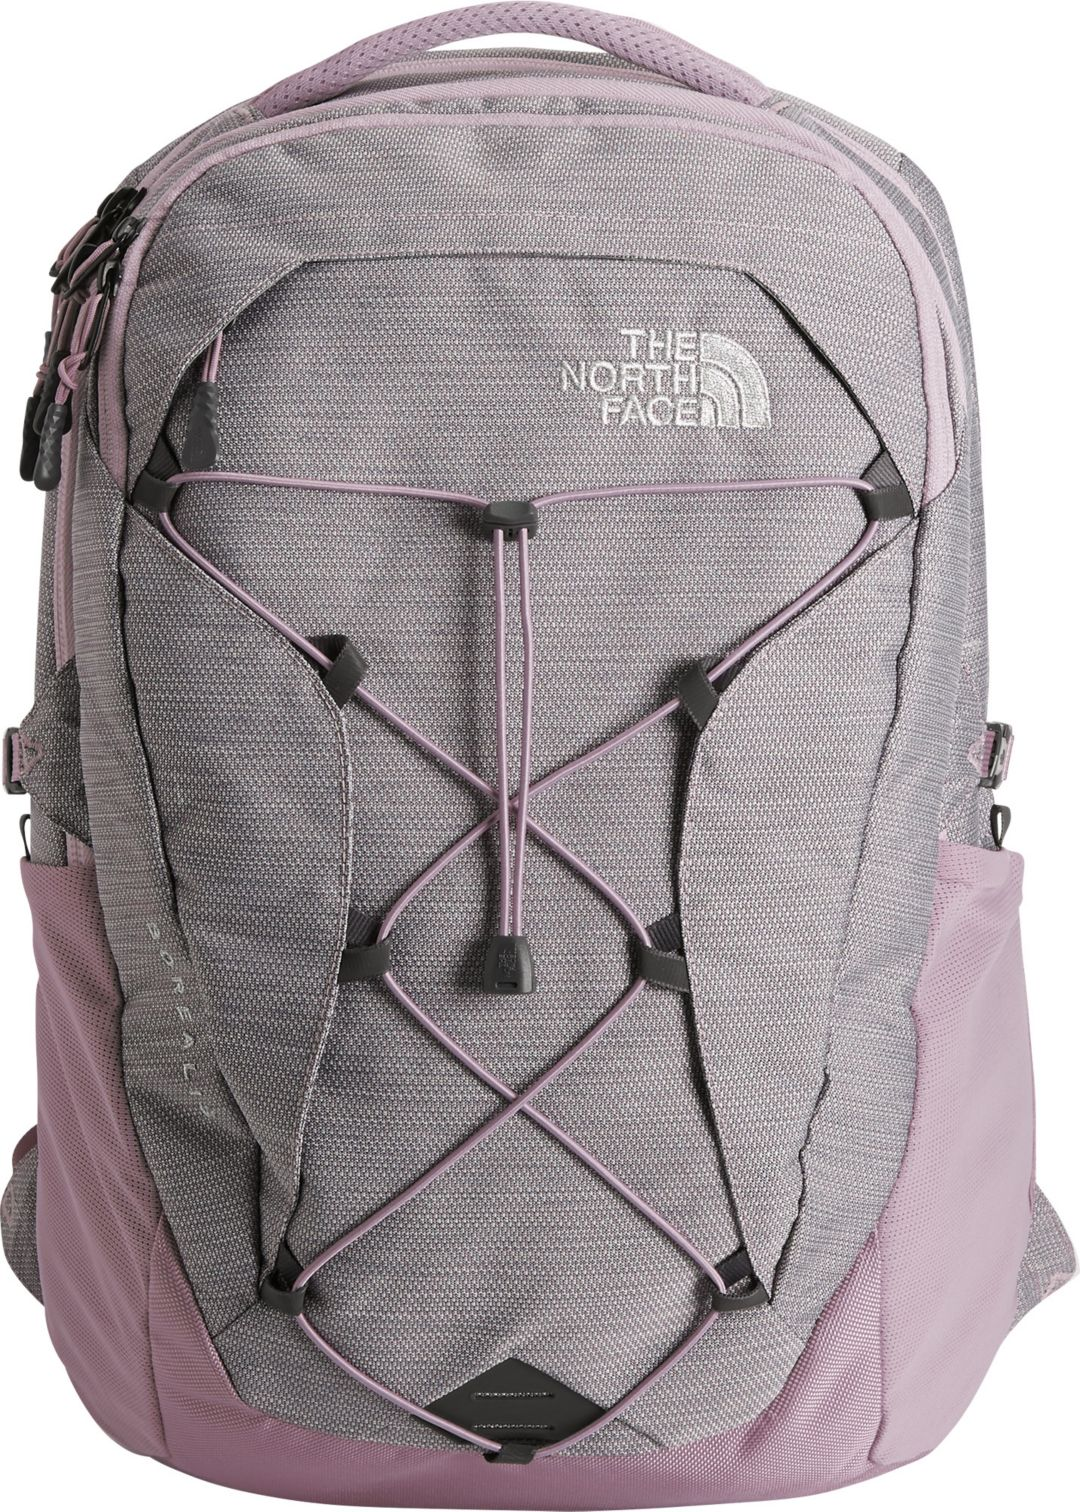 bf3cae93e The North Face Women's Borealis Luxe Backpack